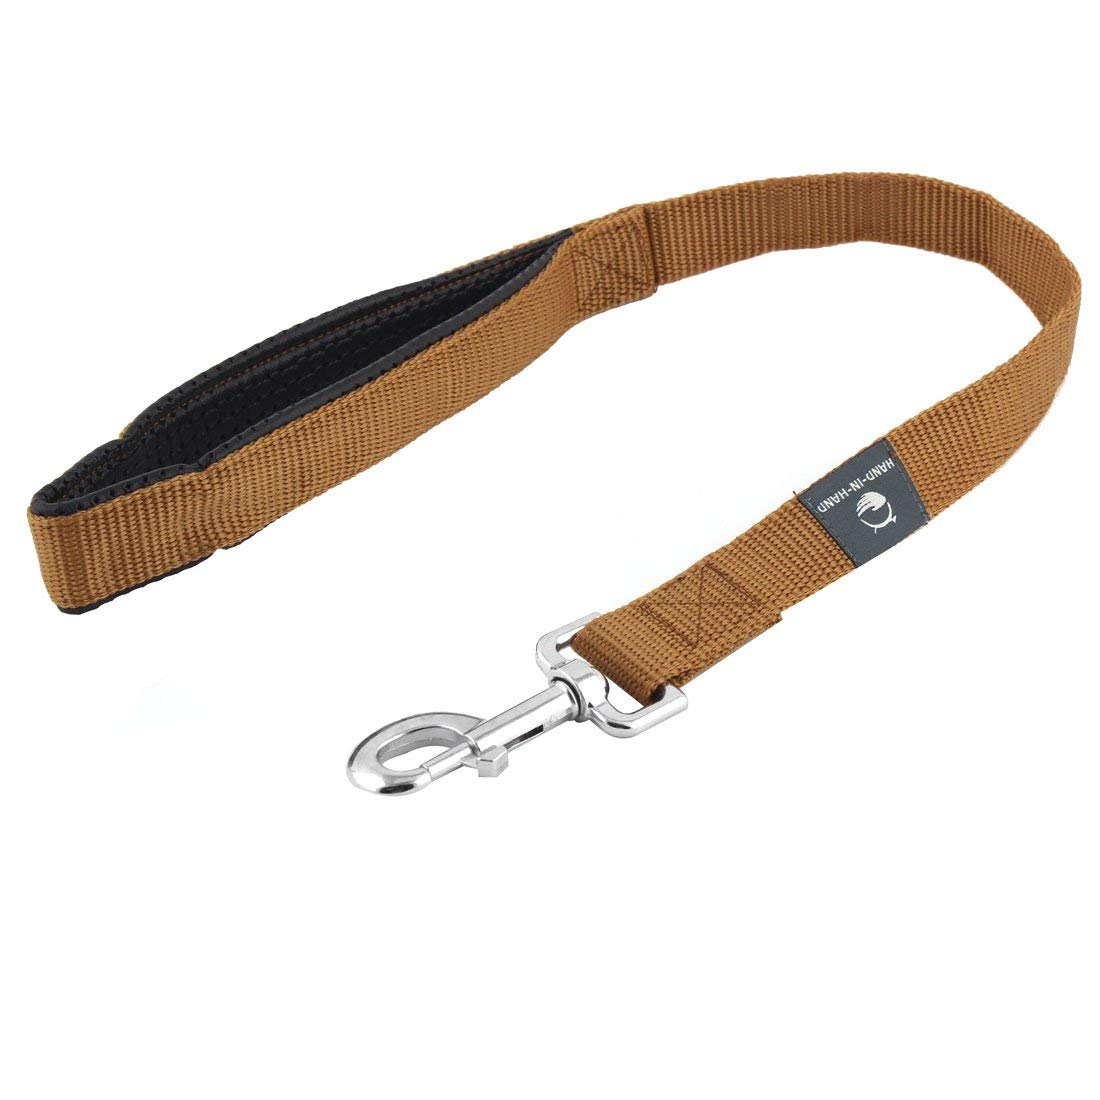 Tiger Grain Pattern Pet Adattabile Halter Leash Dog Traction Rope Strap